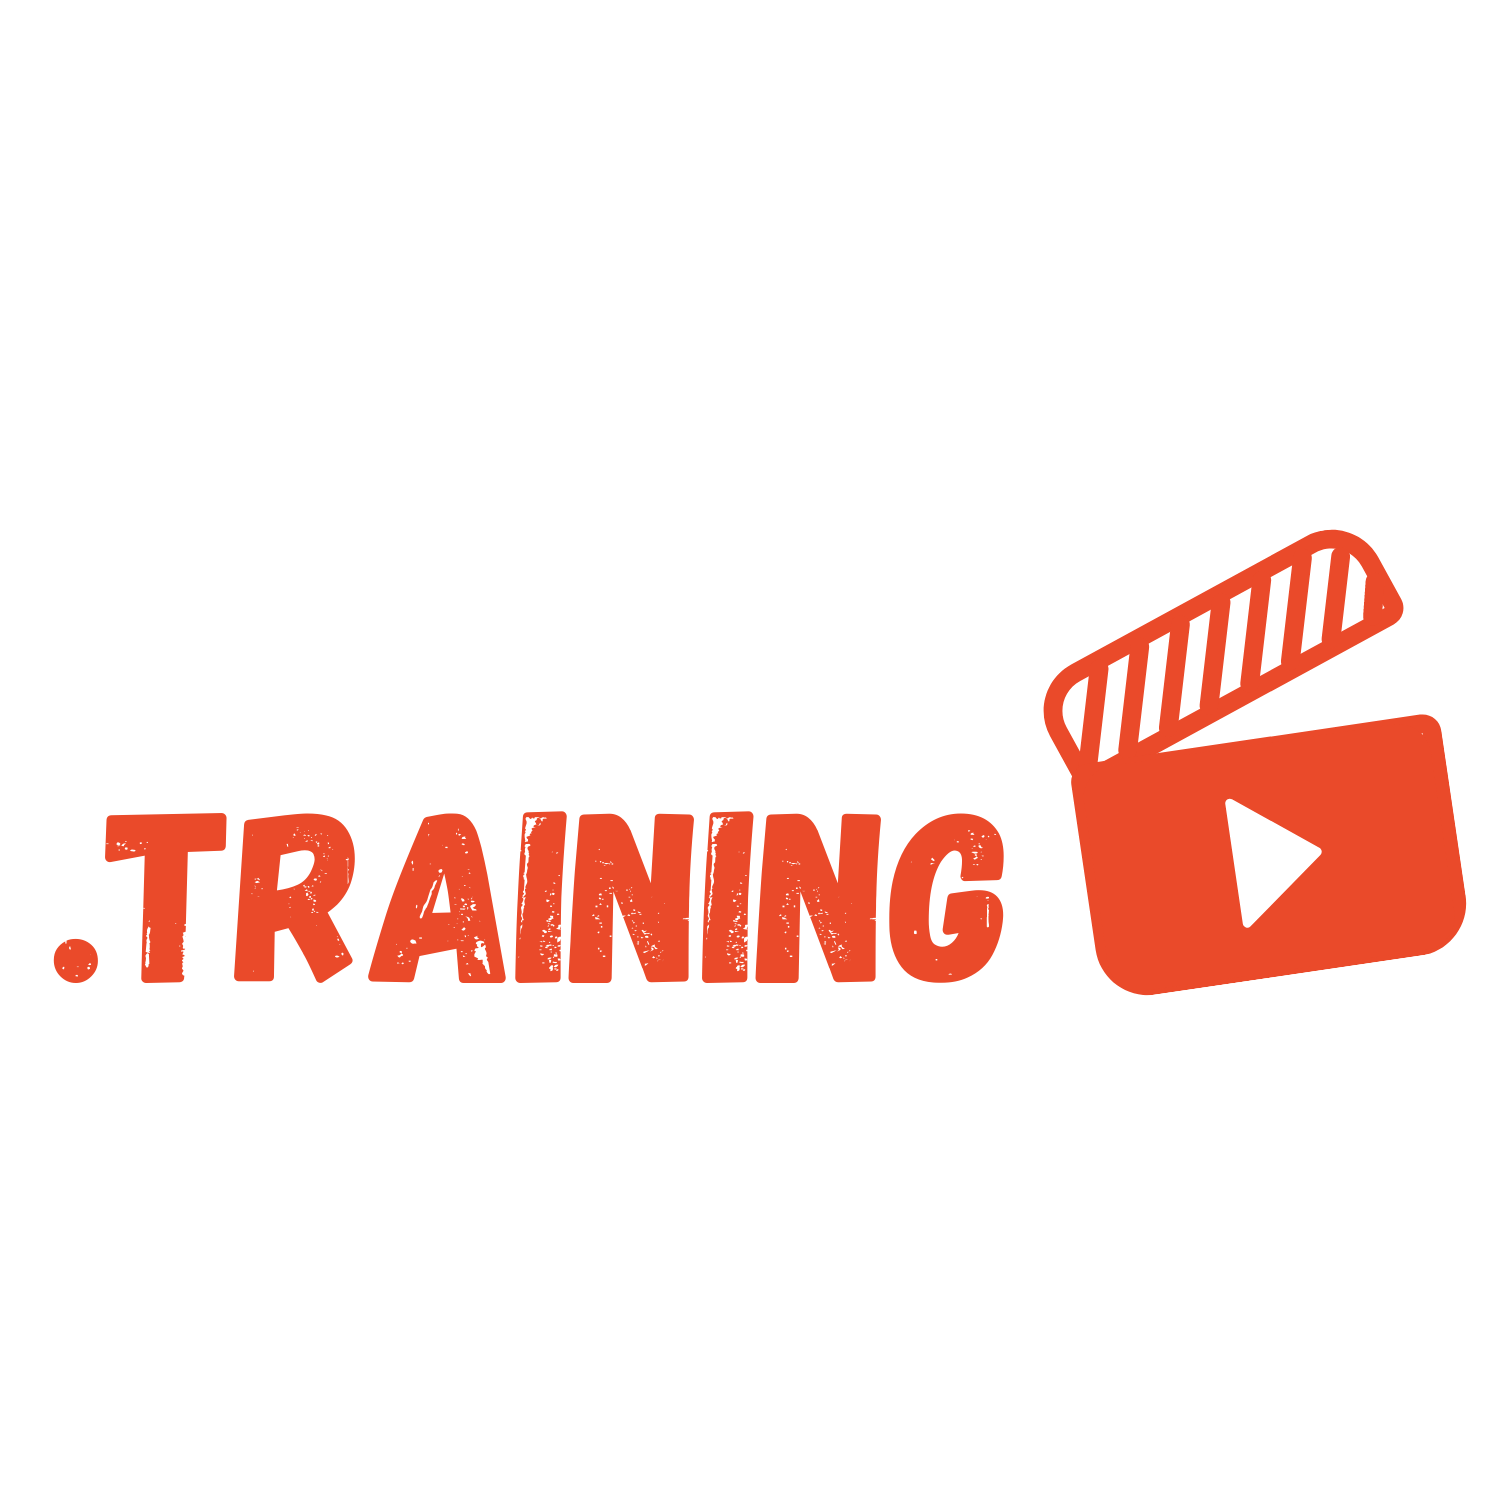 MyStudio.Training